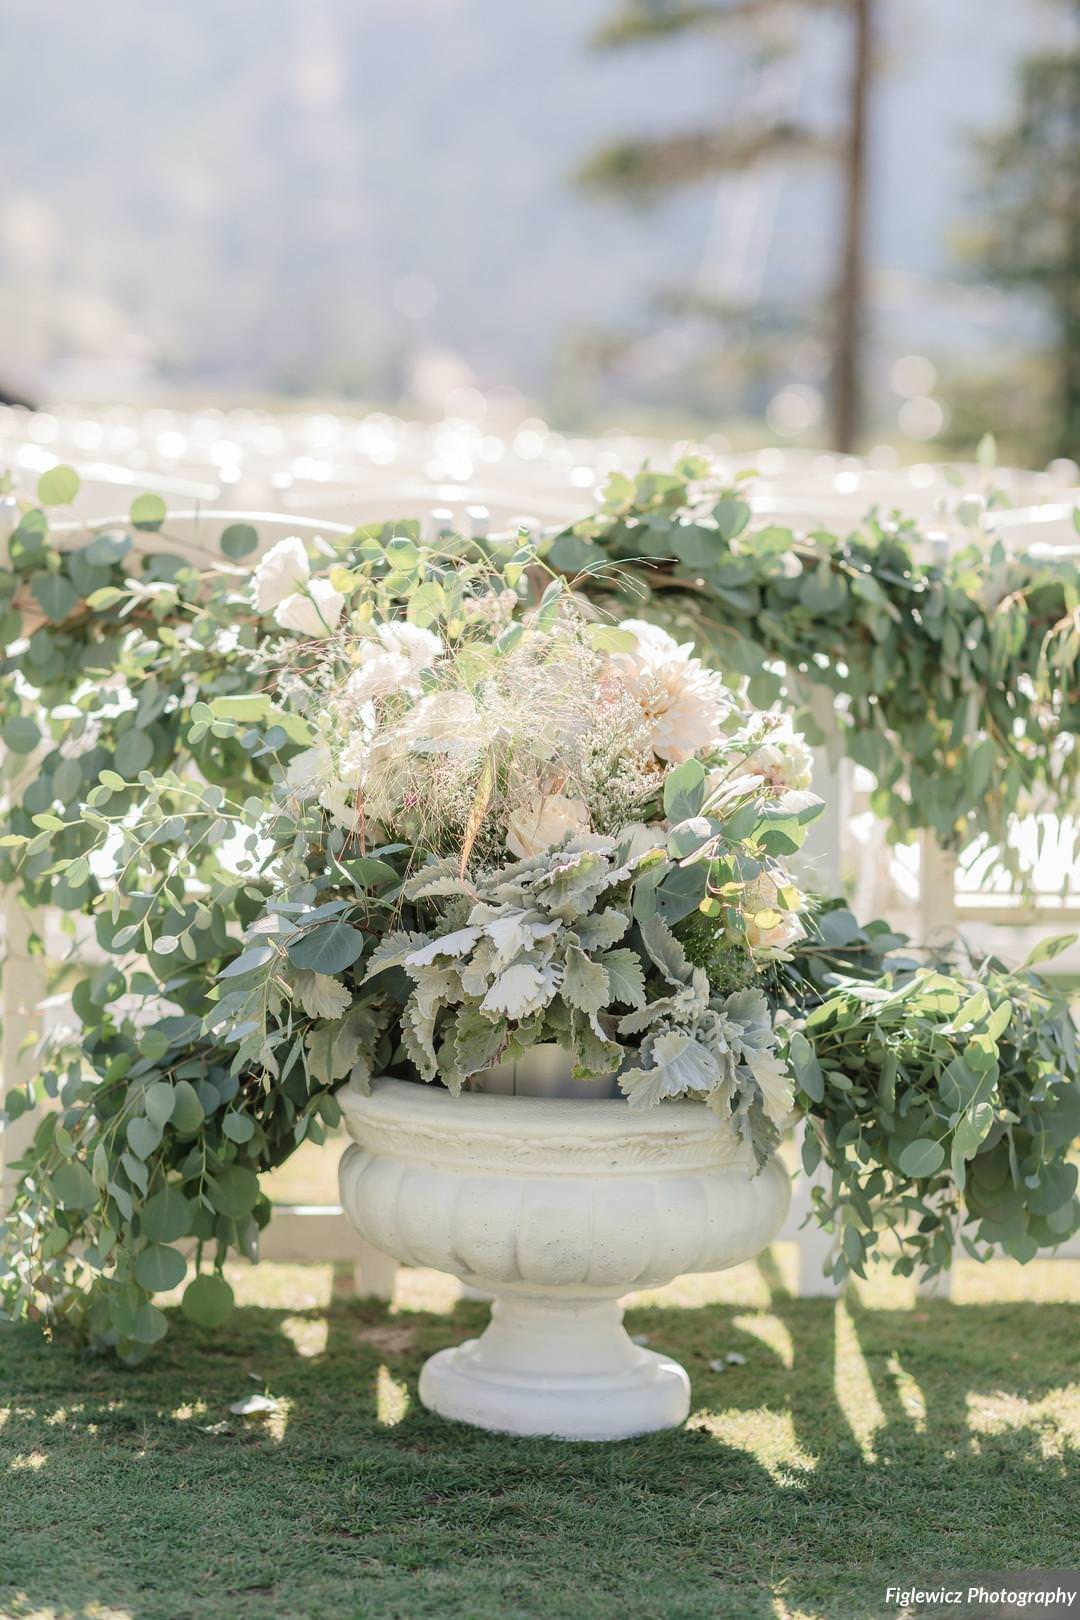 Garden_Tinsley_FiglewiczPhotography_LakeTahoeWeddingSquawValleyCreekTaylorBrendan00078_big